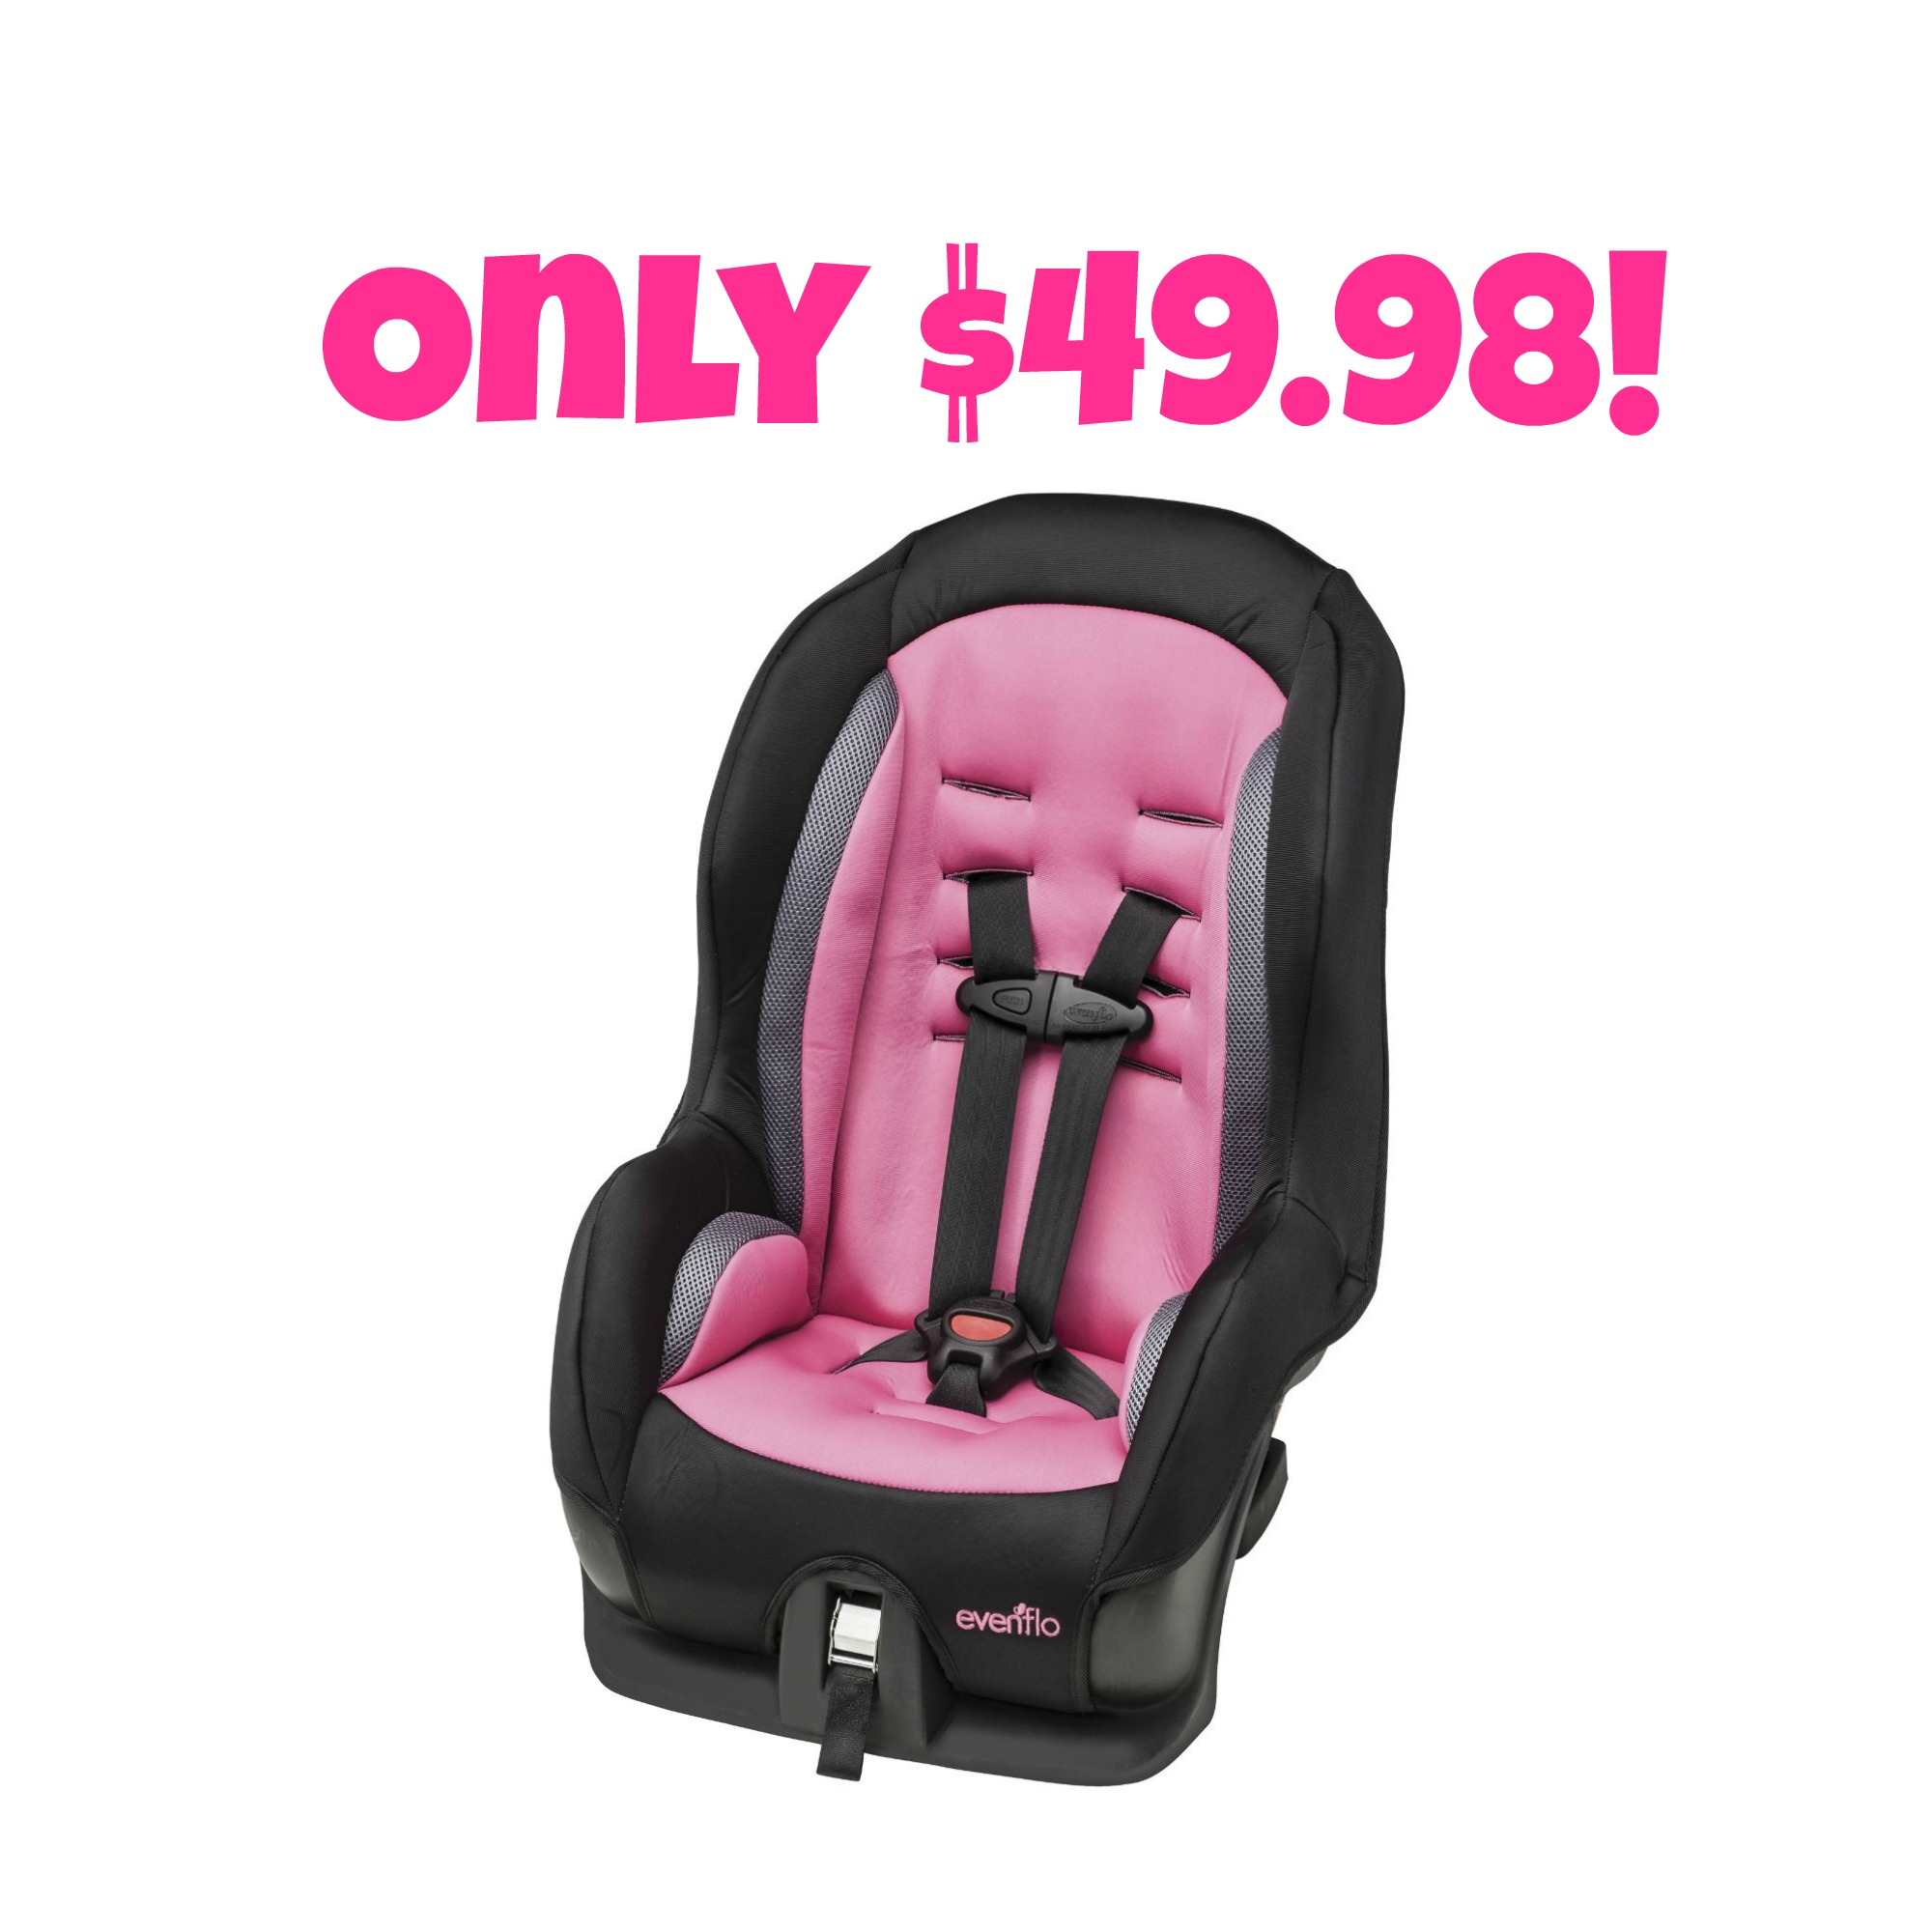 Evenflo Tribute Sport Convertible Car Seat In Willa Only 4998